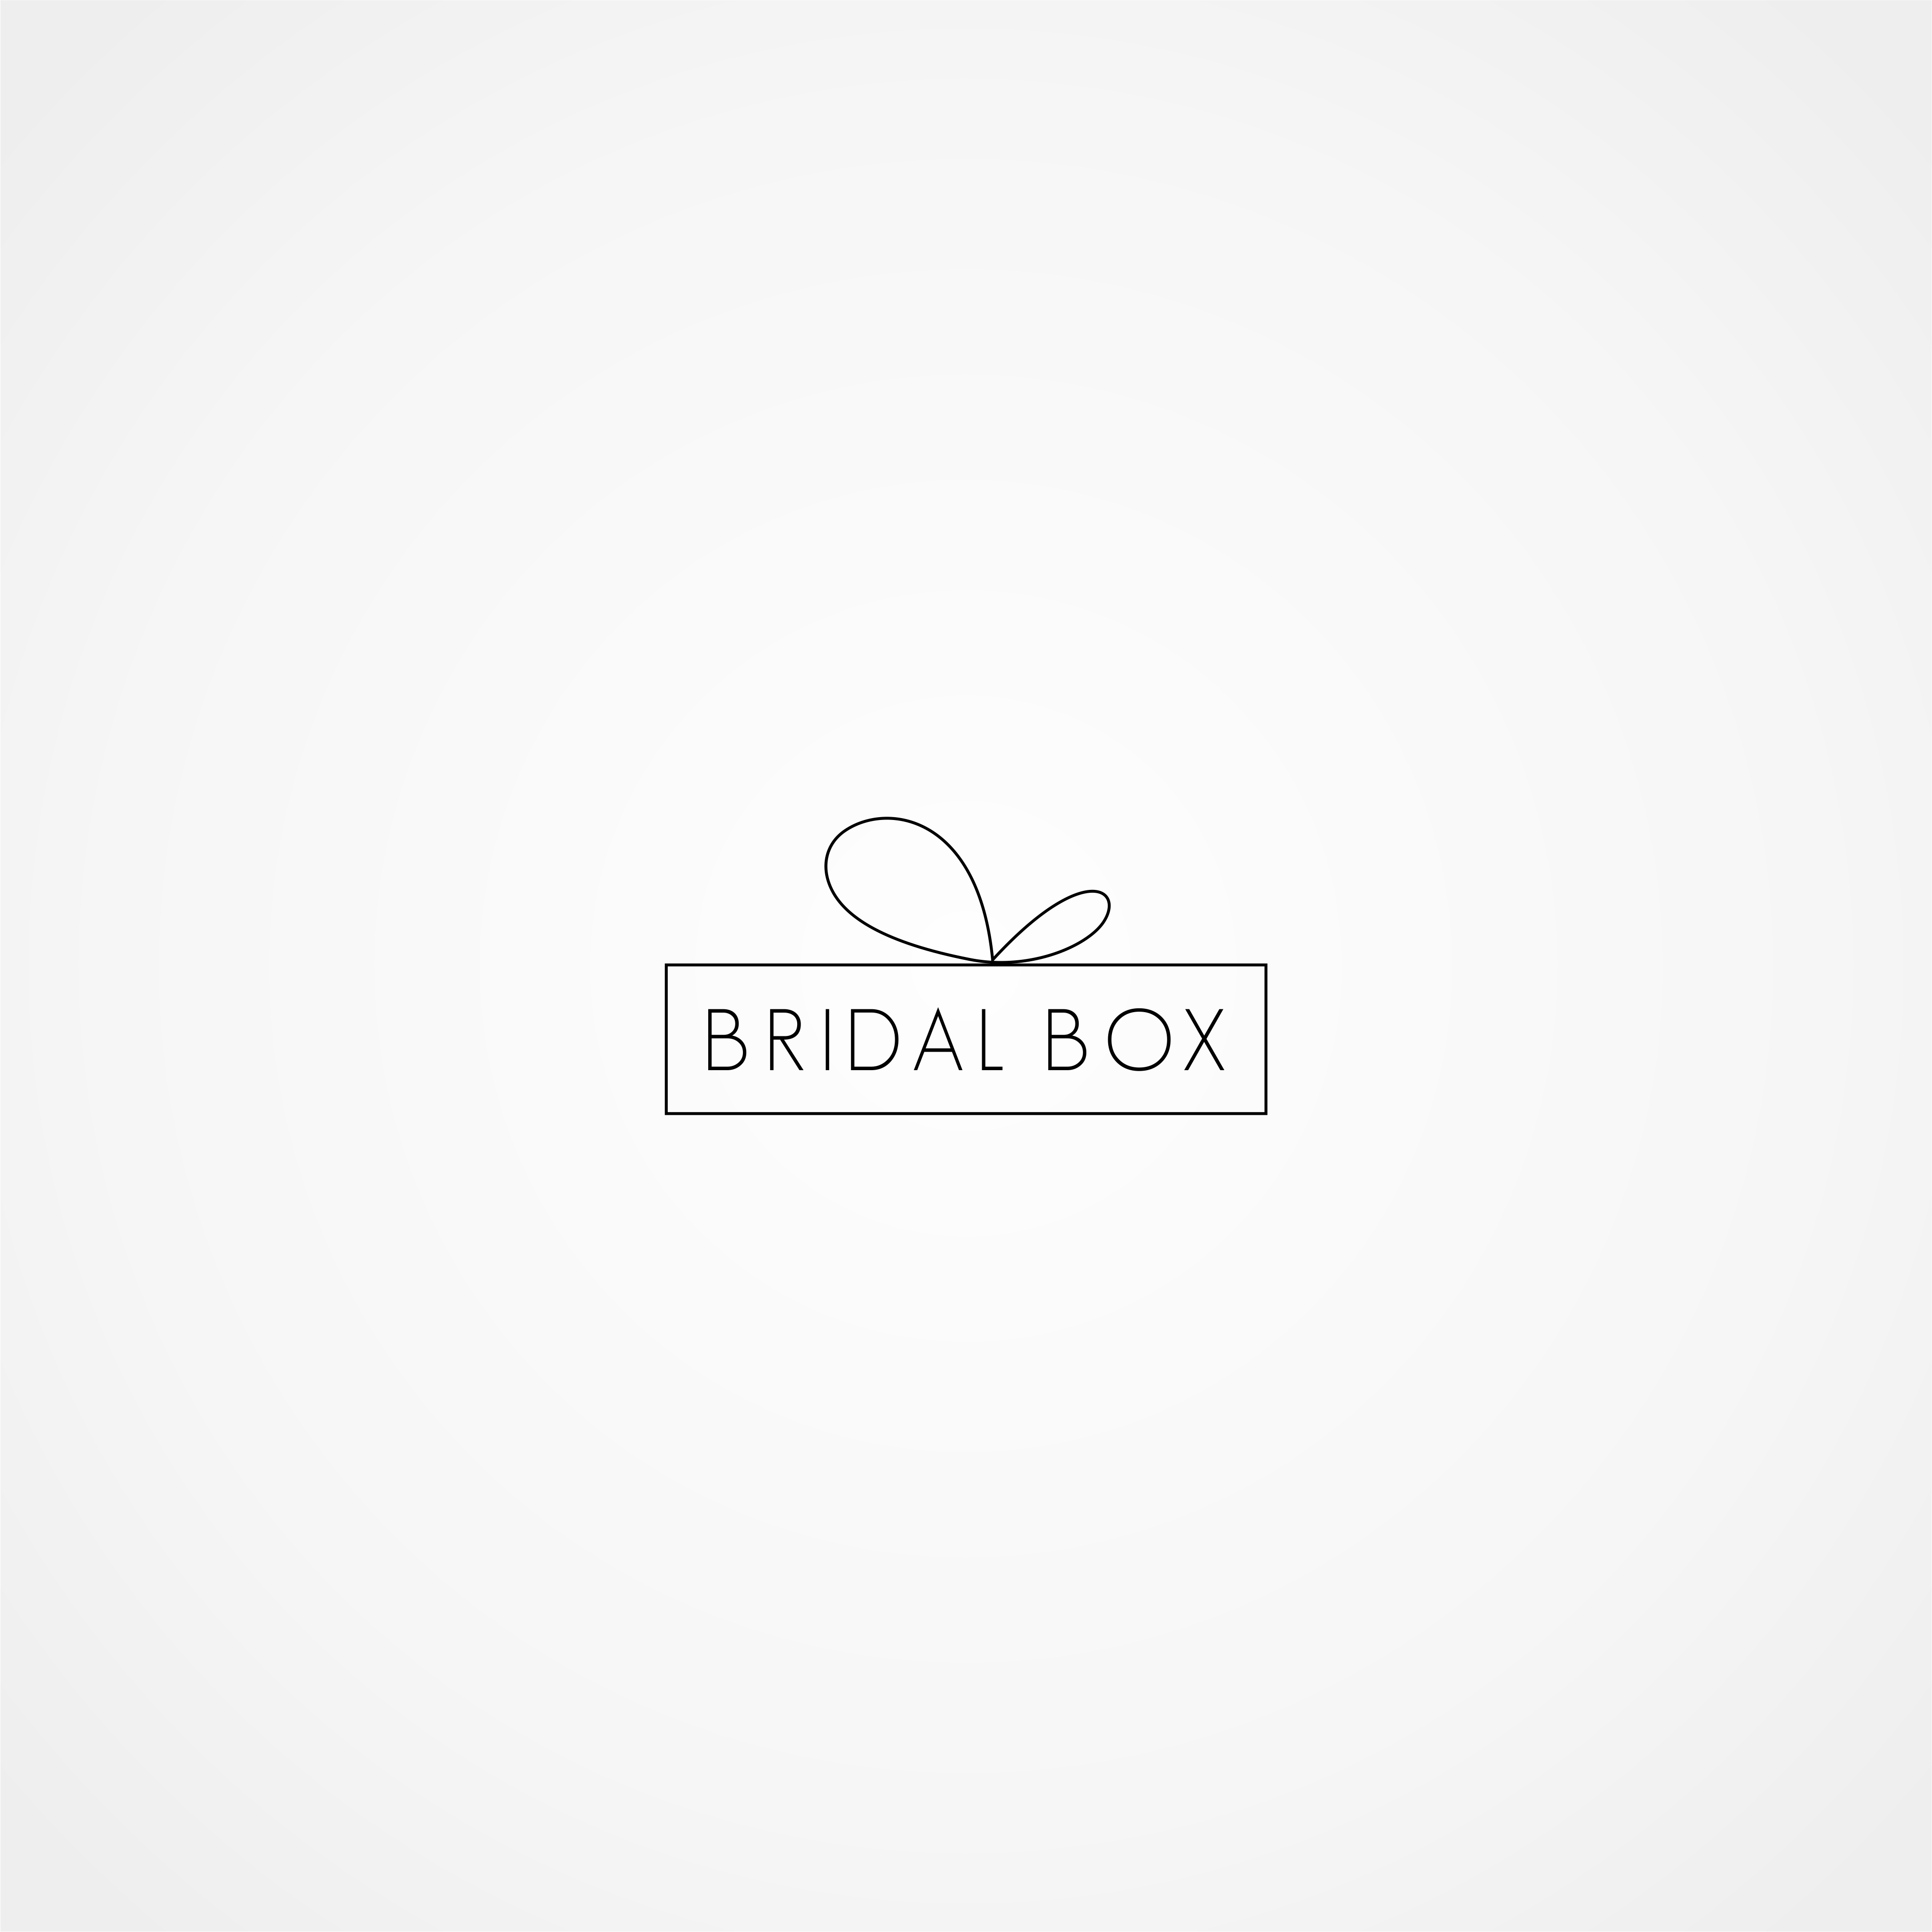 Create a chic logo for a wedding business geared towards the bridesmaids